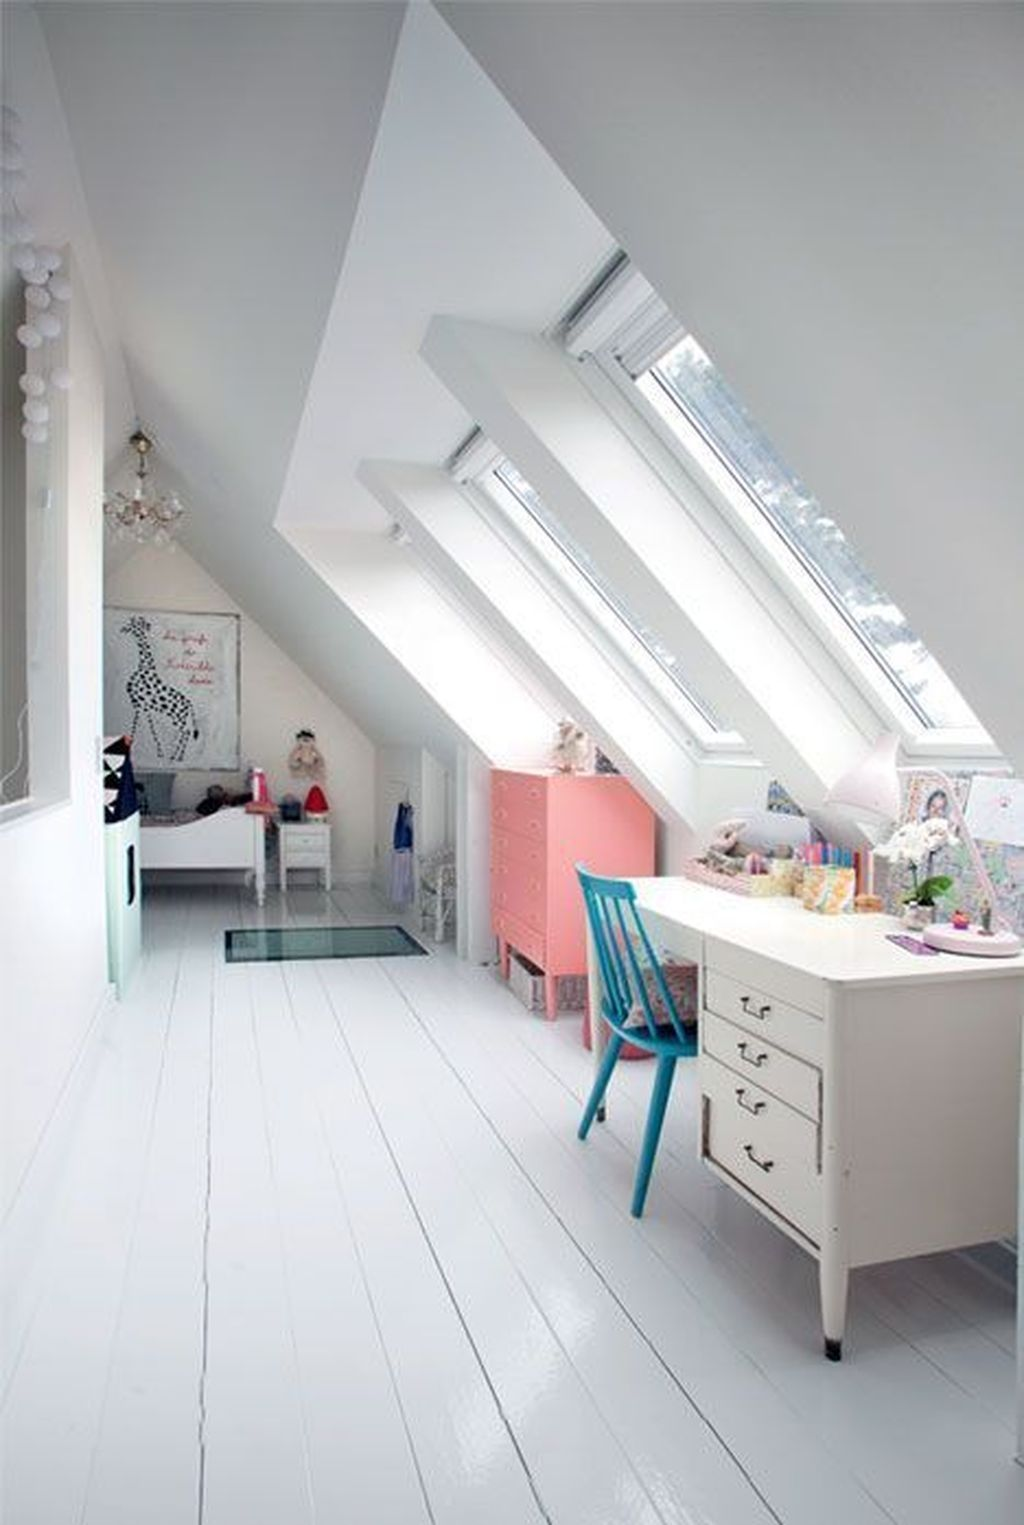 White Window Wall Desk Colourful Chair And Drawers Attic Living Rooms Kid Room Decor Loft Room